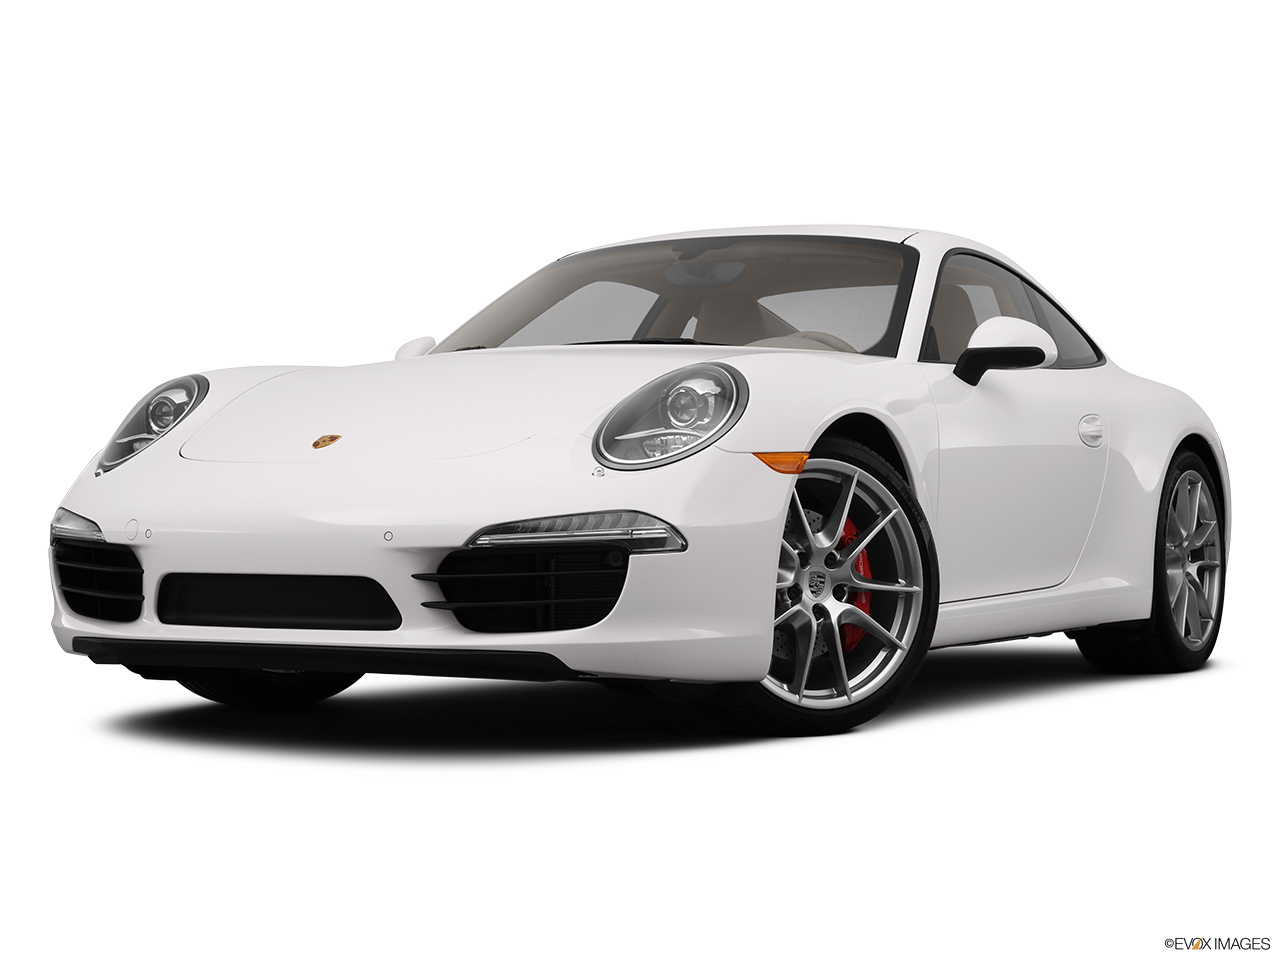 2012 Porsche 911 (991) Carrera S Front angle view, low wide perspective.